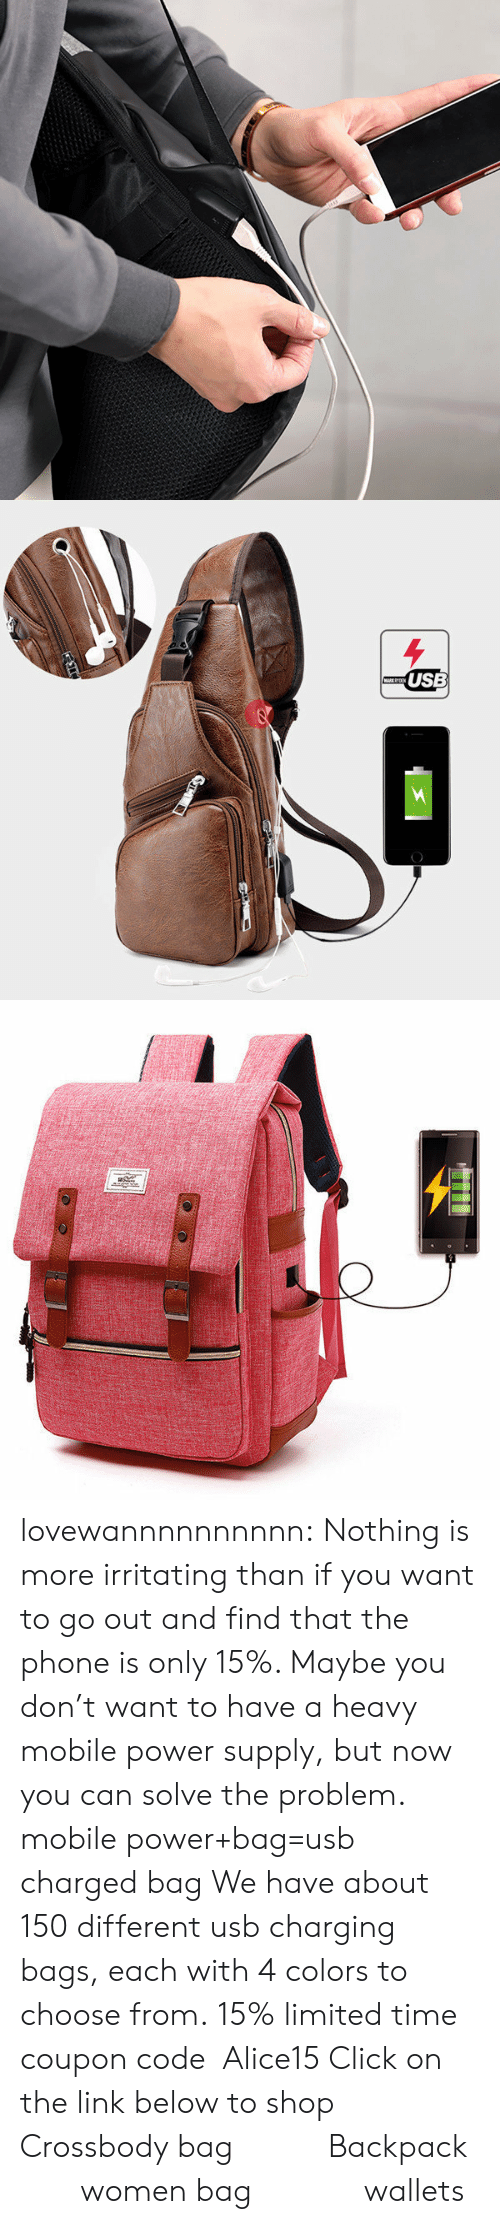 Click, Phone, and Tumblr: USB lovewannnnnnnnnn: Nothing is more irritating than if you want to go out and find that the phone is only 15%. Maybe you don't want to have a heavy mobile power supply, but now you can solve the problem. mobile power+bag=usb charged bag We have about 150 different usb charging bags, each with 4 colors to choose from. 15% limited time coupon code:Alice15 Click on the link below to shop Crossbody bag      Backpack     women bag       wallets